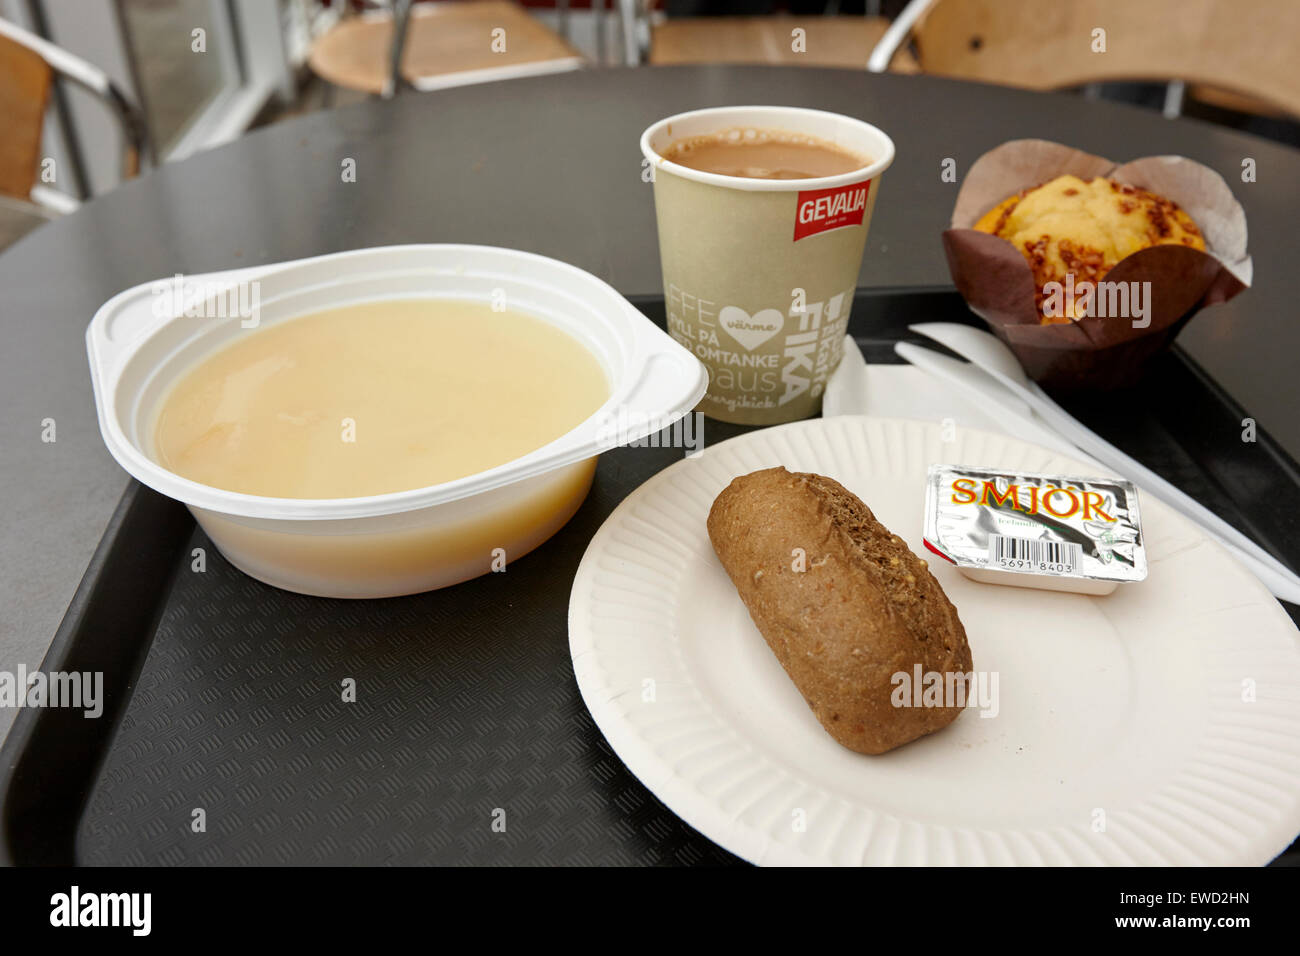 icelandic soup and a roll with coffee and muffin at cafe in visitors centre Thingvellir iceland - Stock Image